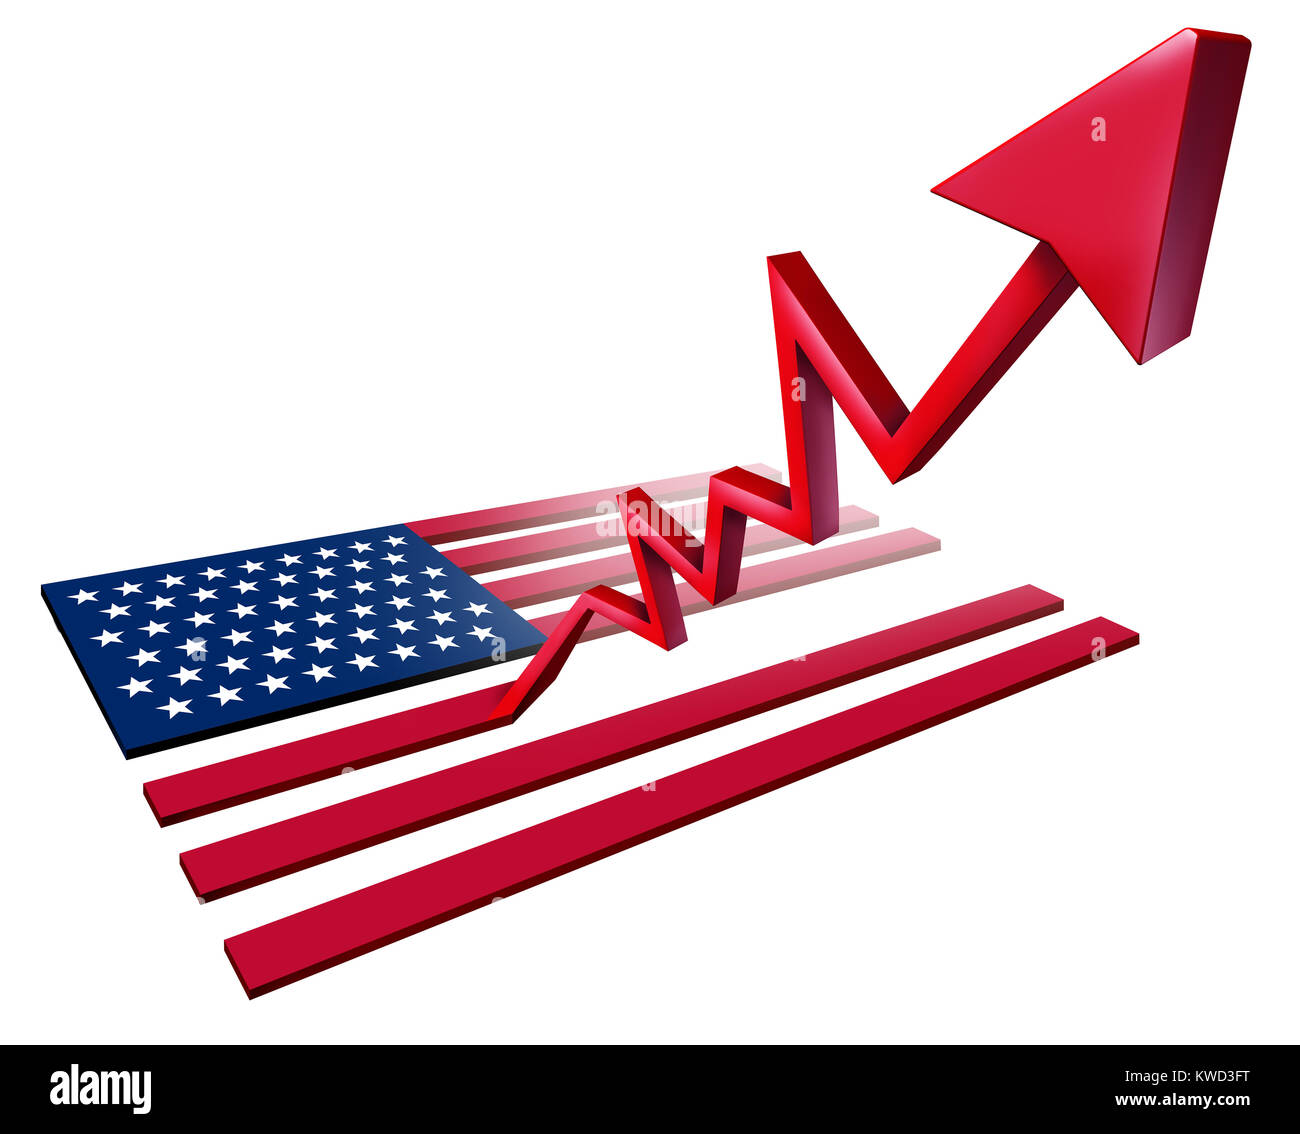 Booming American economy growth and economic United States GDP increase as a US flag transforming into an upward - Stock Image